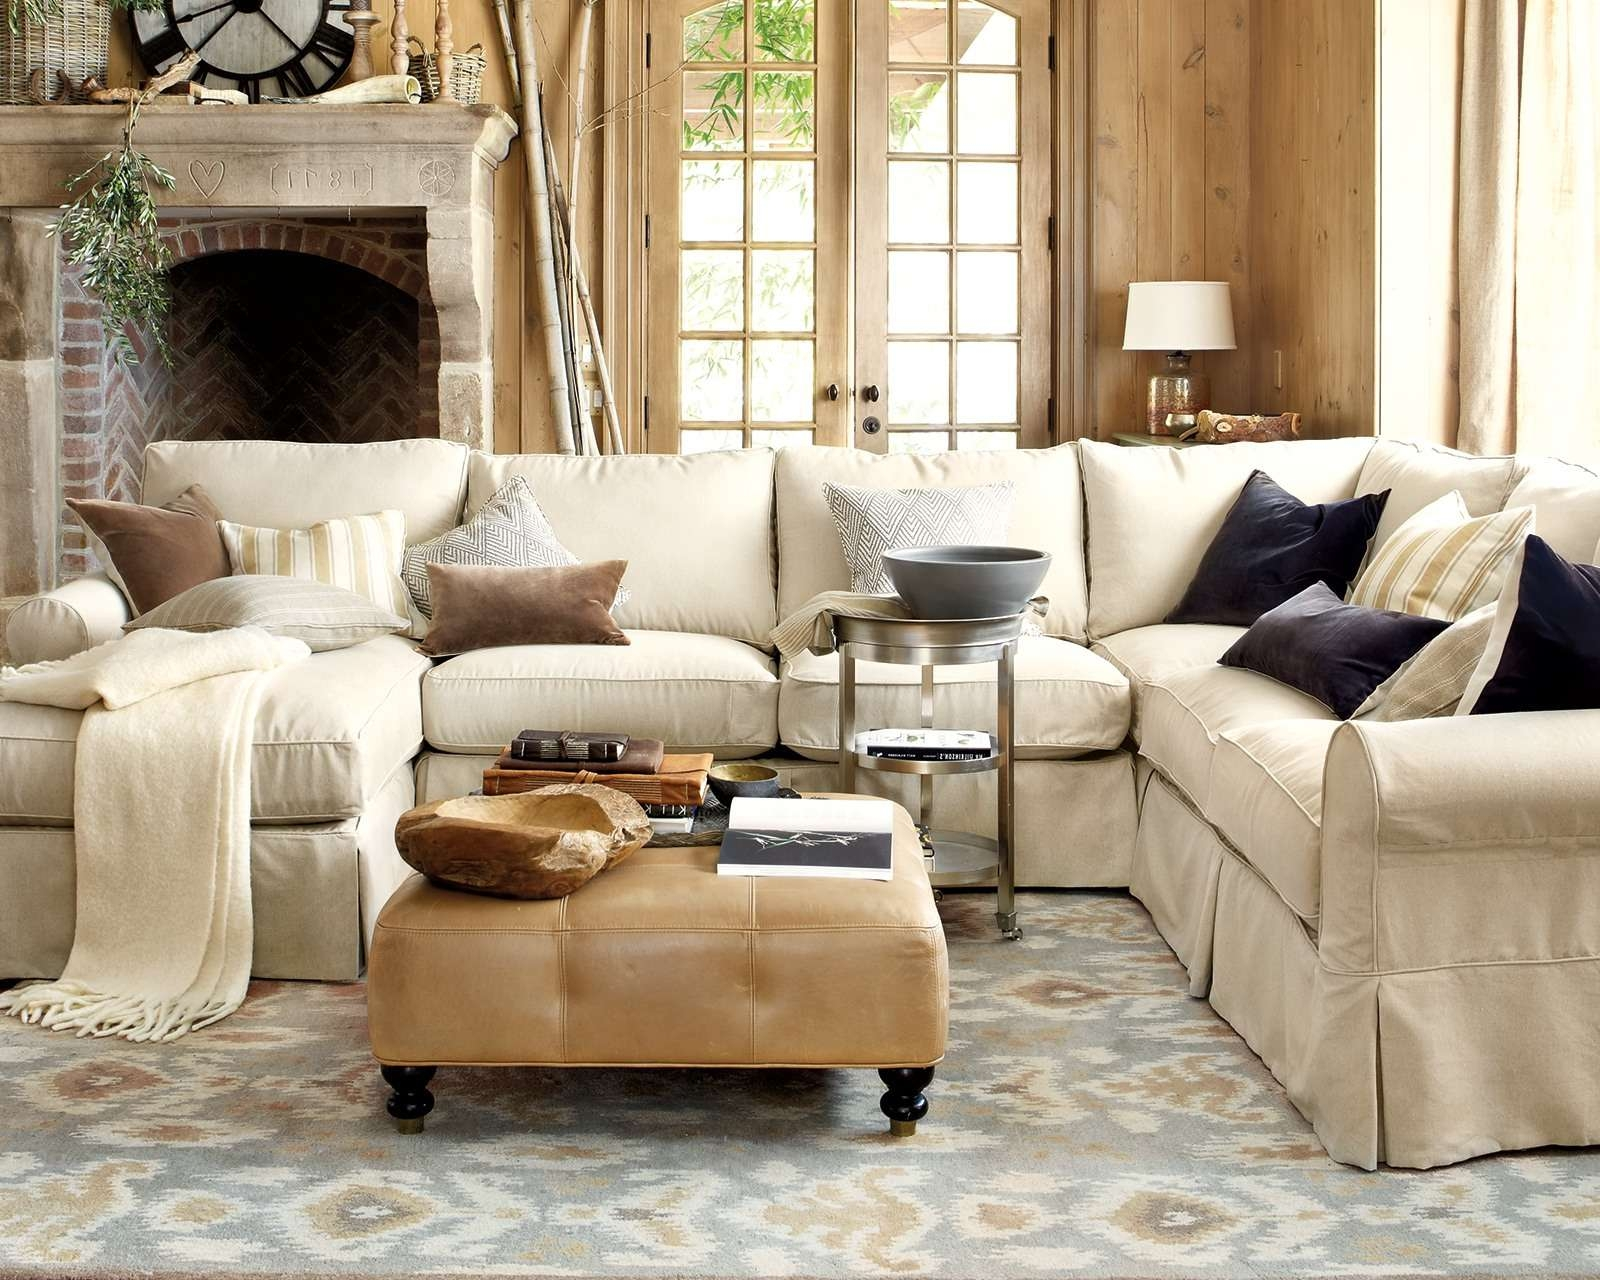 How To Match A Coffee Table To Your Sectional – How To Decorate In Well Known Coffee Table For Sectional Sofa (View 8 of 20)